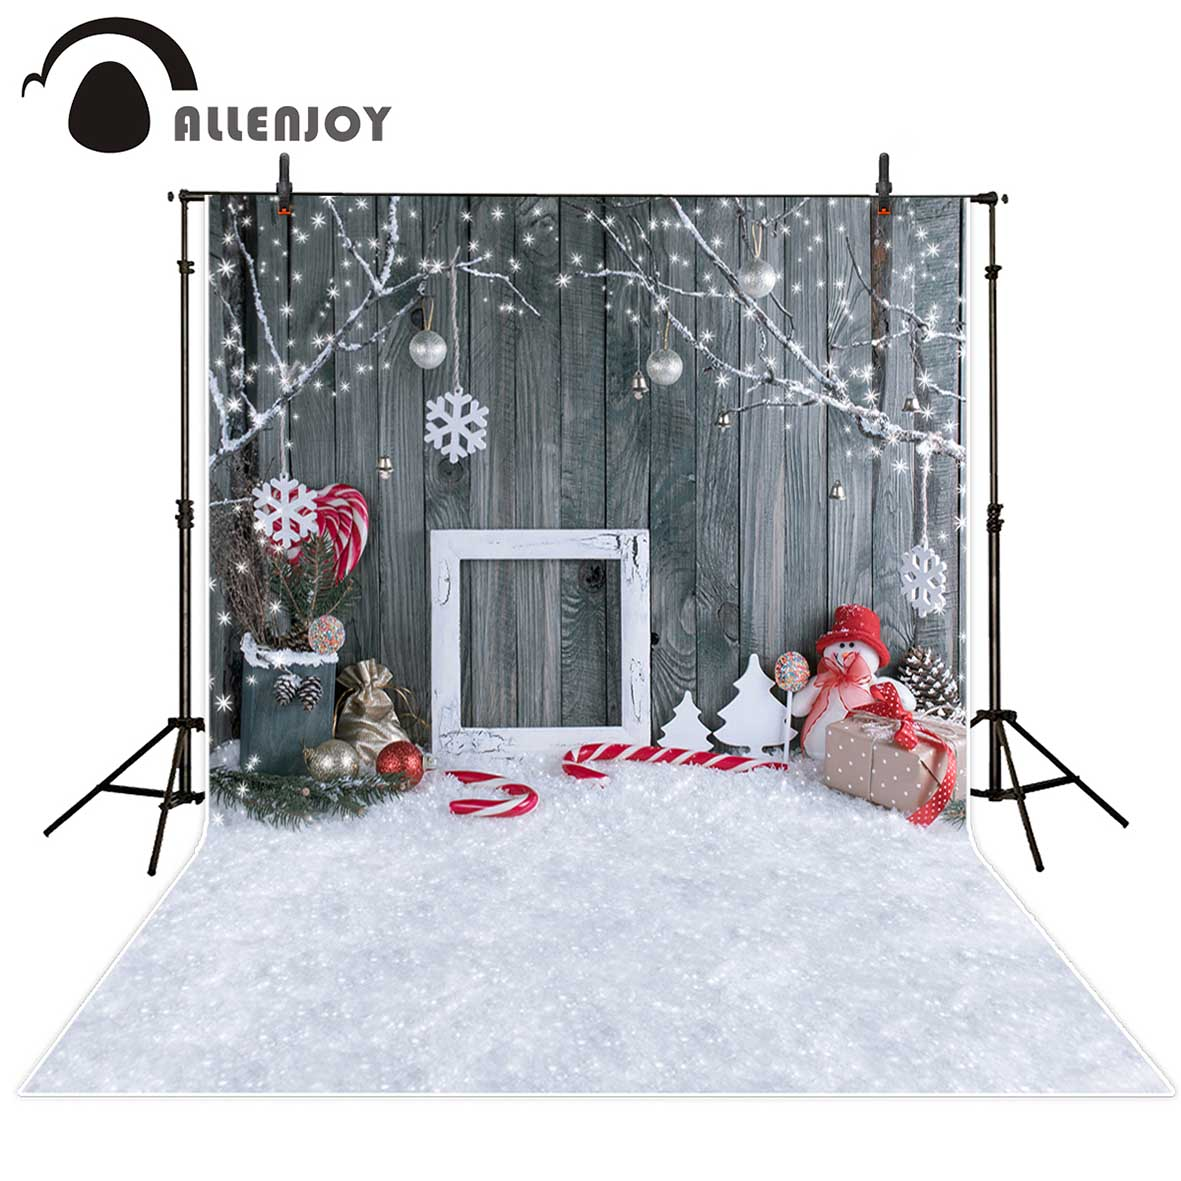 Allenjoy photographic background Christmas snowman gray woodwall snowflake backdrop newborn photobooth vinyl photographic christmas backdrop photography allenjoy snowflake stars blur background photographic studio children s camera digital printing